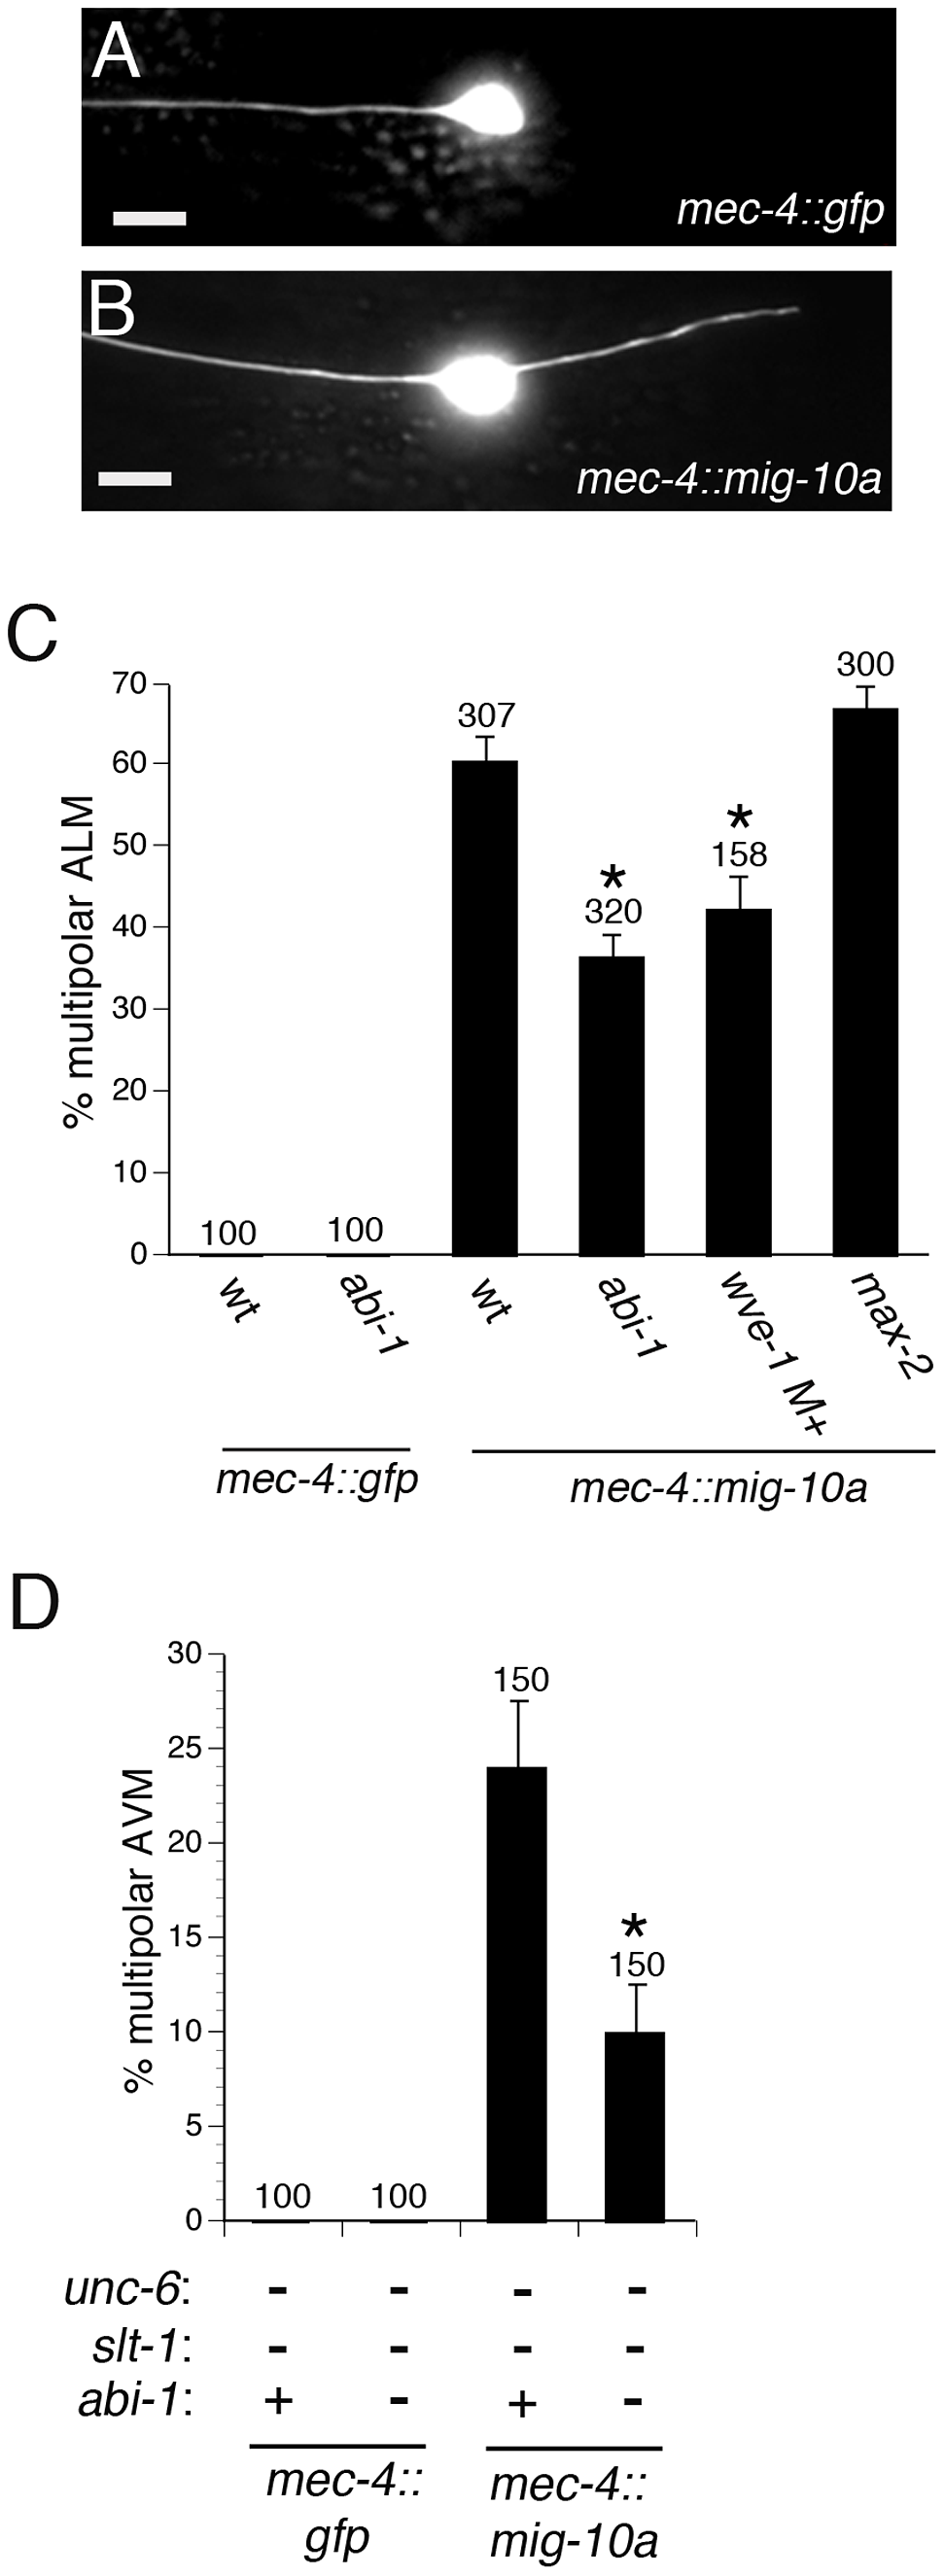 ABI-1 and WVE-1 mediate outgrowth-promoting activity downstream of MIG-10.